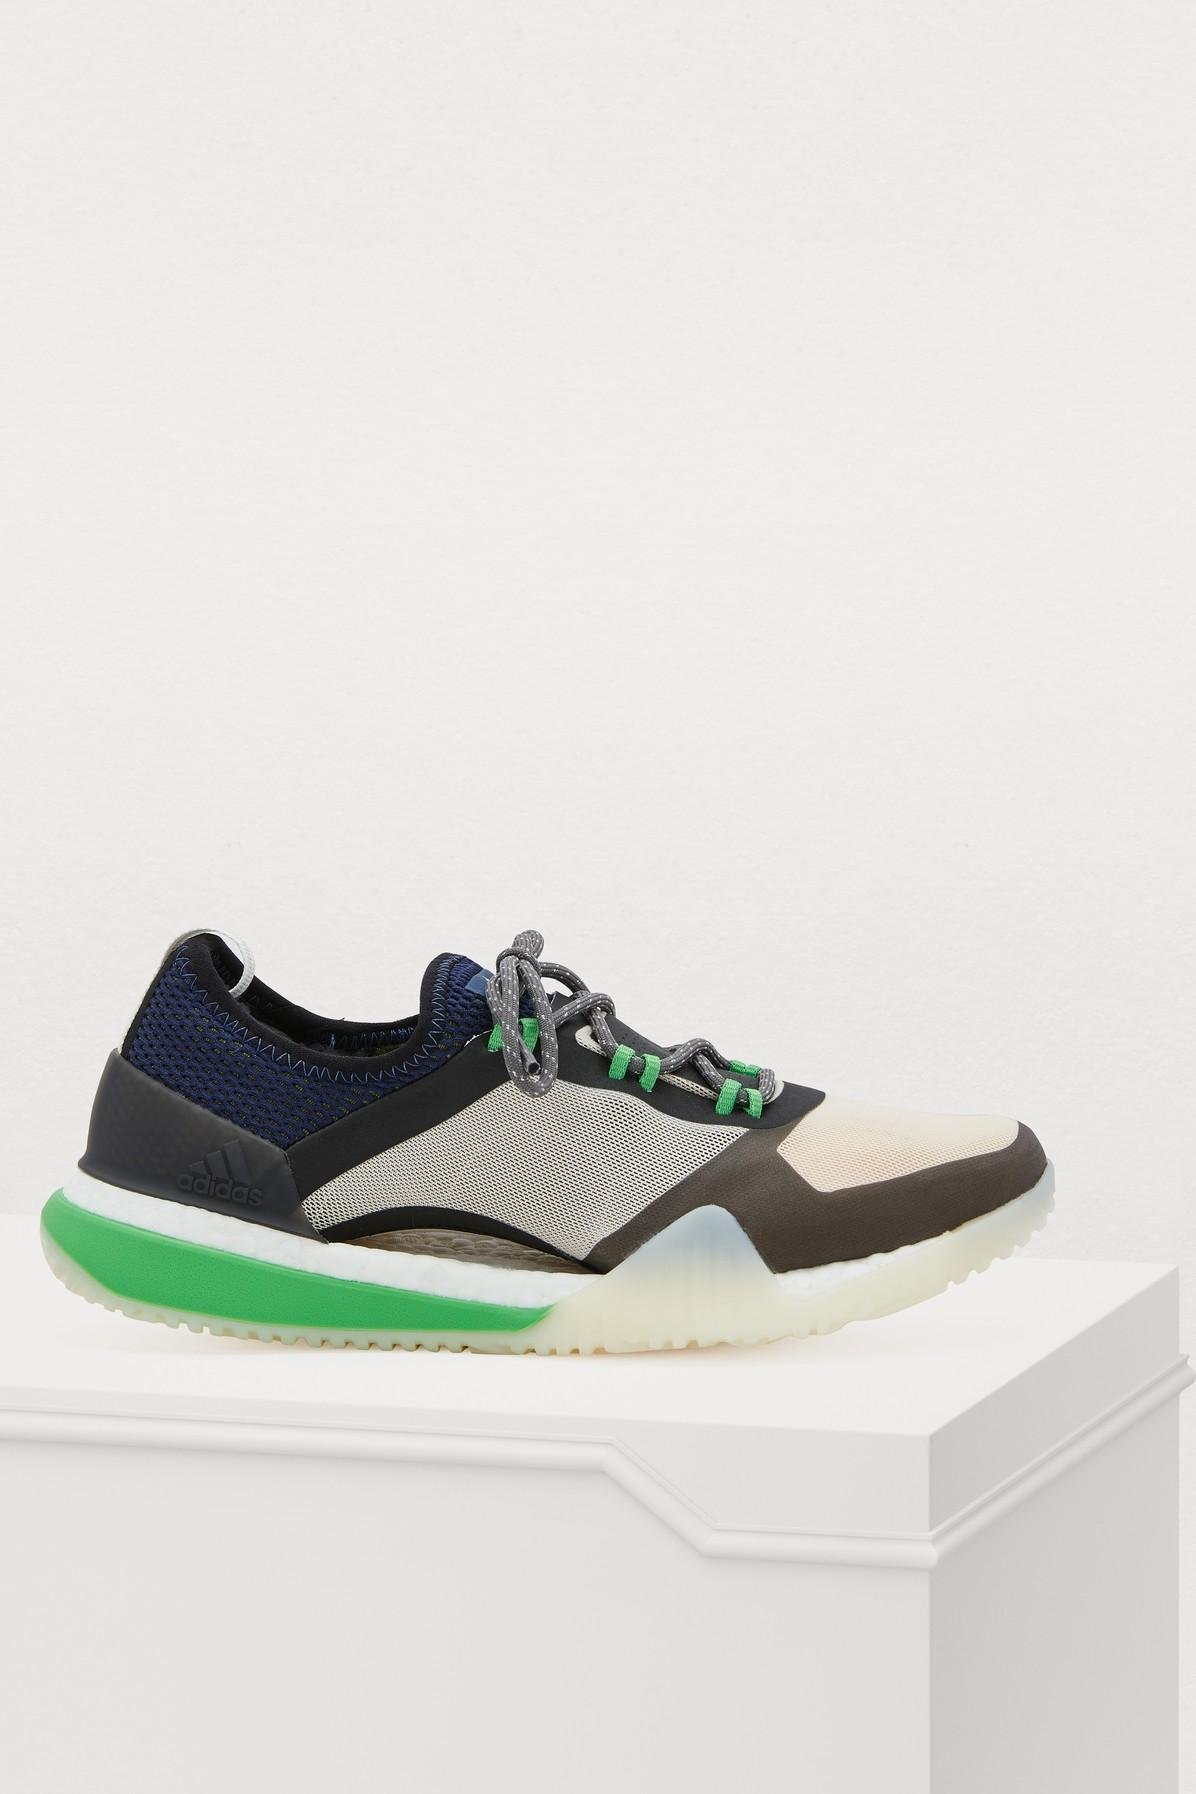 075abd1f7d0c9 Lyst - adidas By Stella McCartney Pure Boost Xtr 3.0.s Sneakers in Black